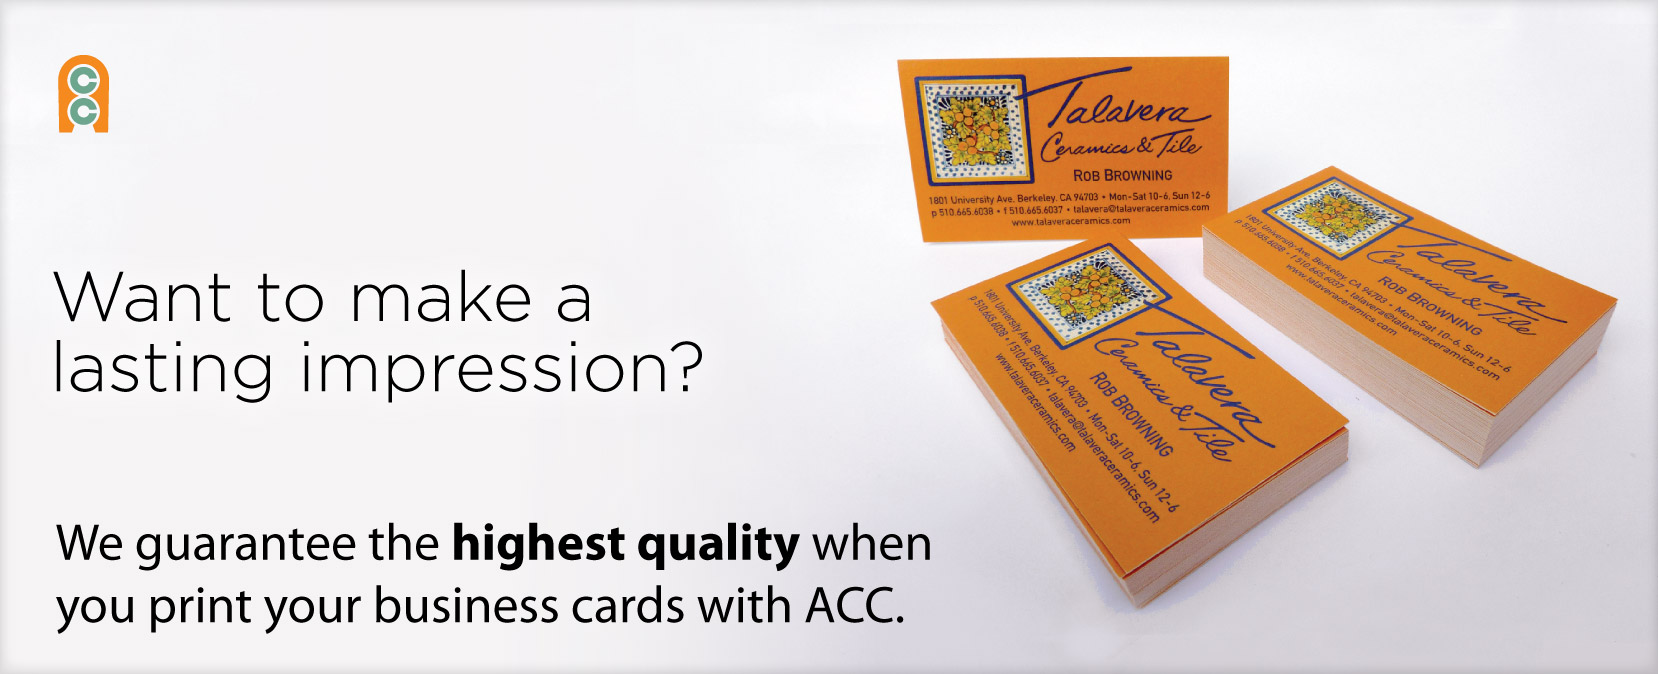 Custom designed business cards on your choice of paper stocks.